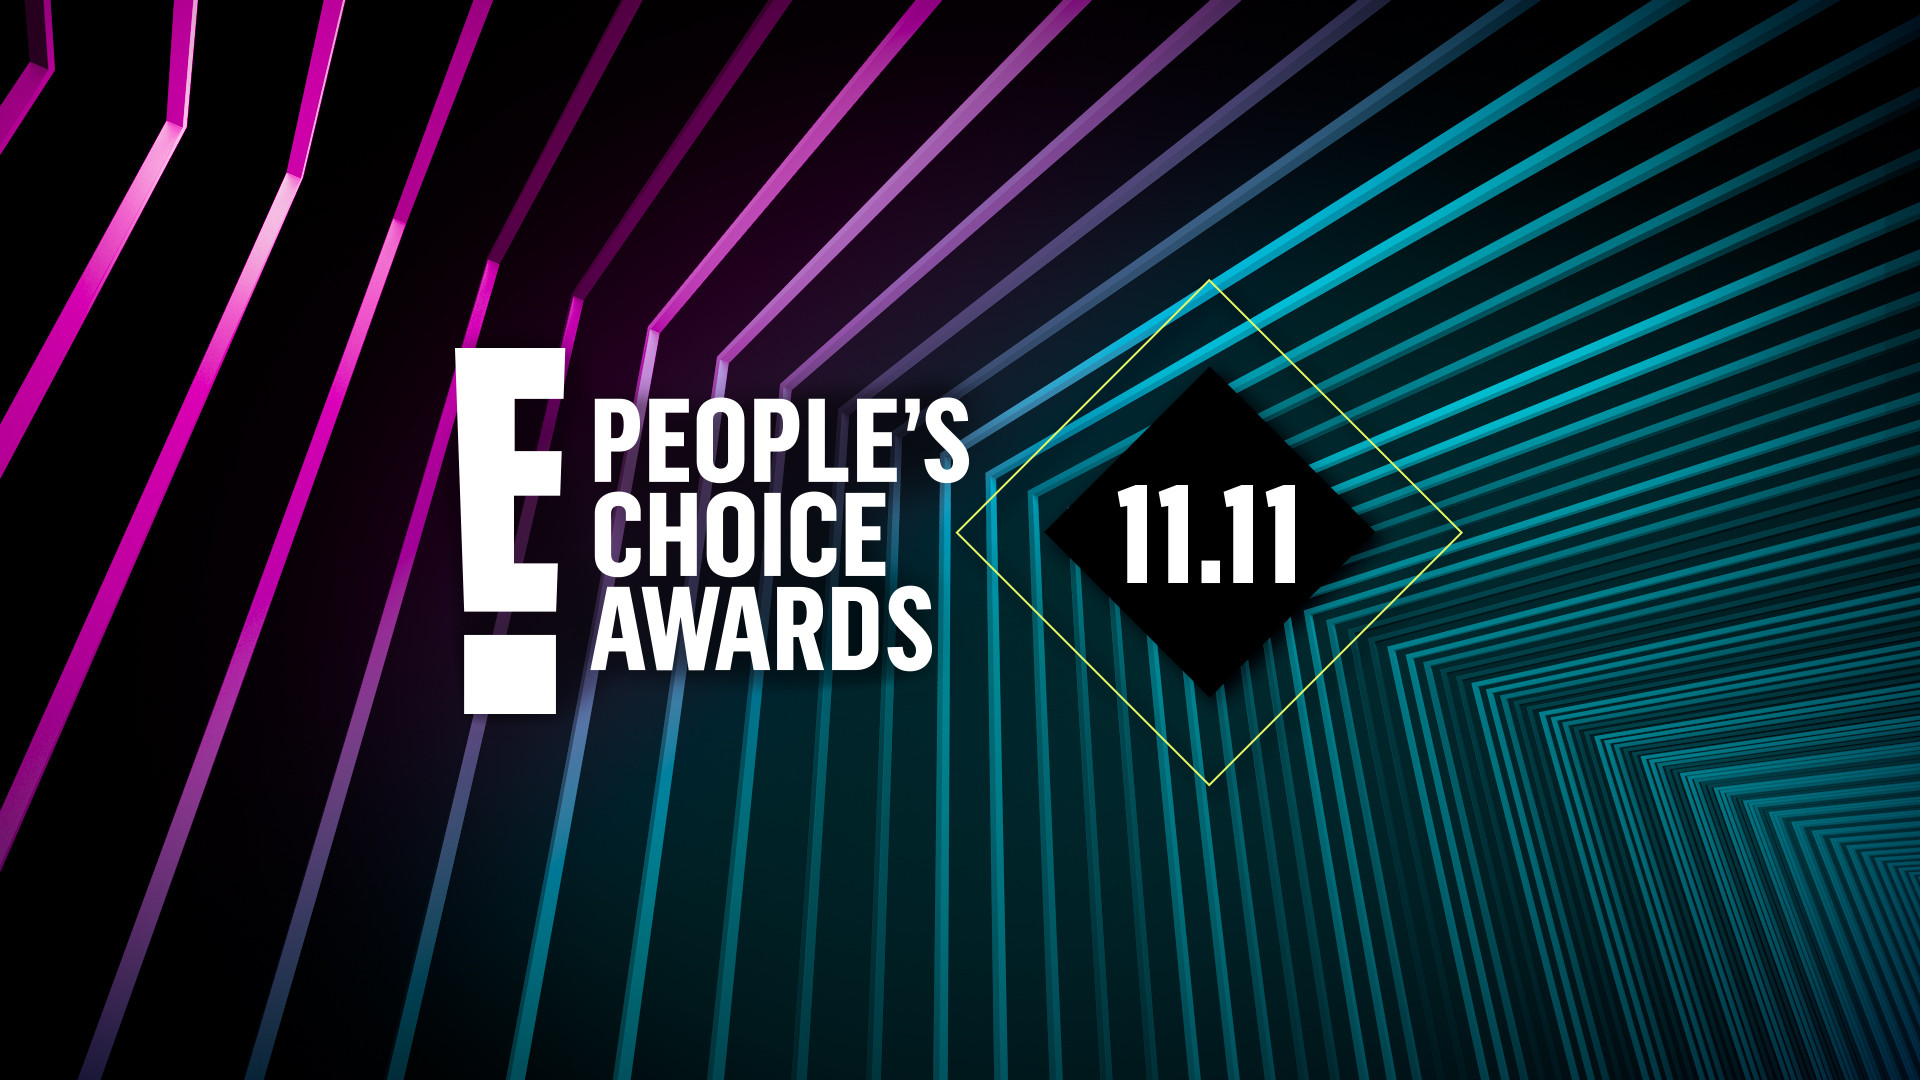 poeple's choice award